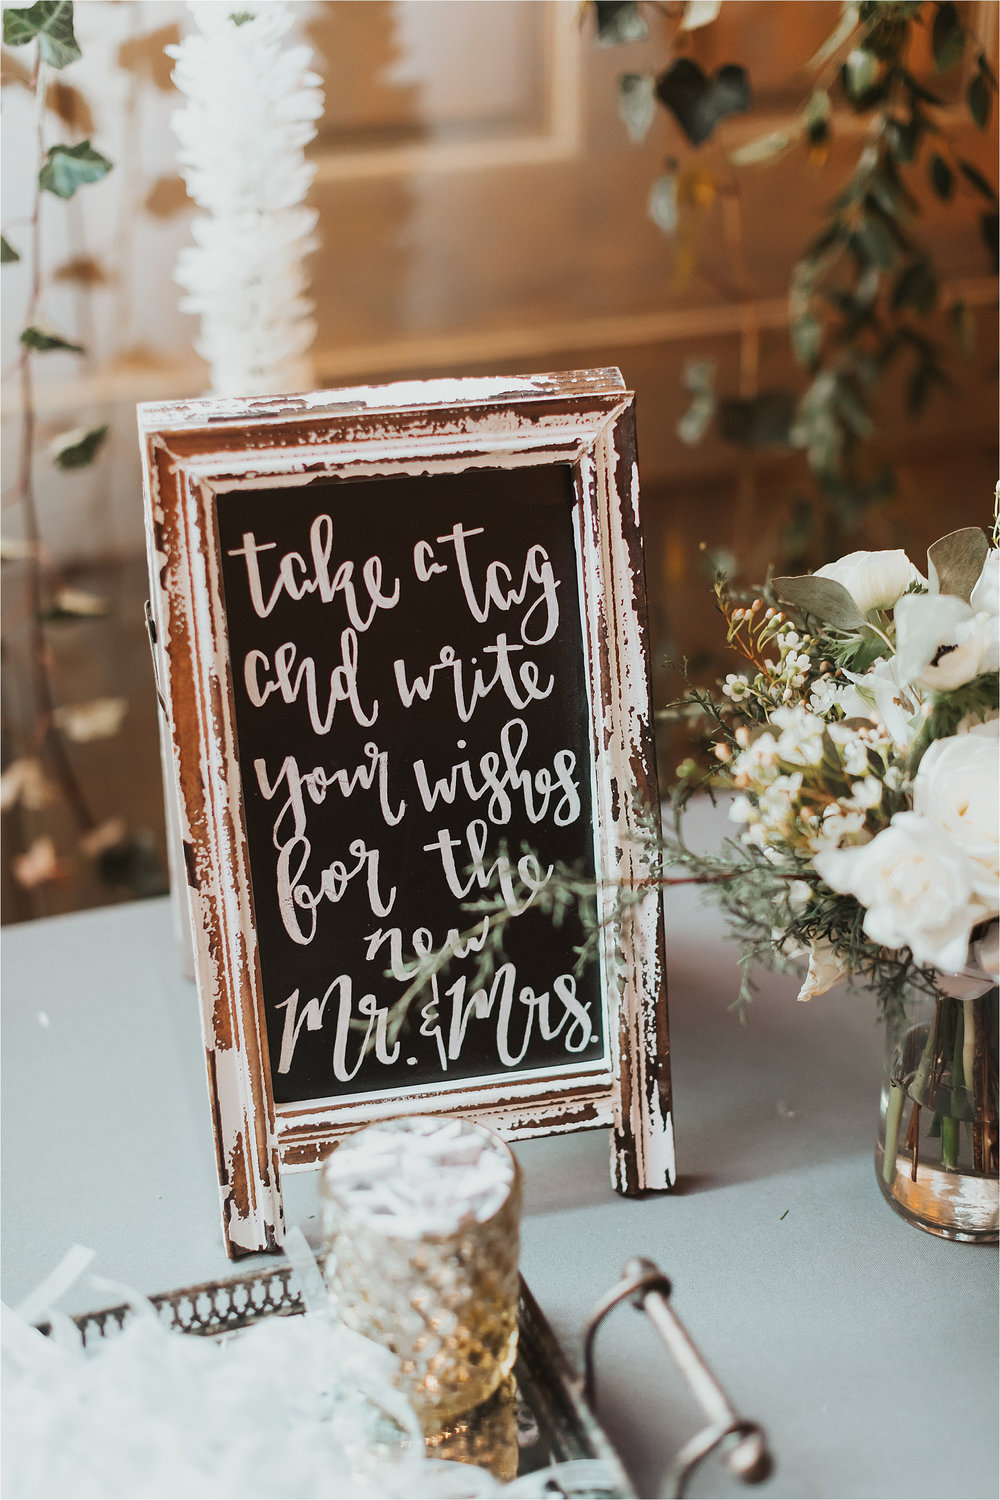 NashvilleWedding_NewYearsEveWedding_NYE_NashvilleWeddingPhotographer_LovelessWedding_Tennessee_MollyPeachPhotography-94.jpg